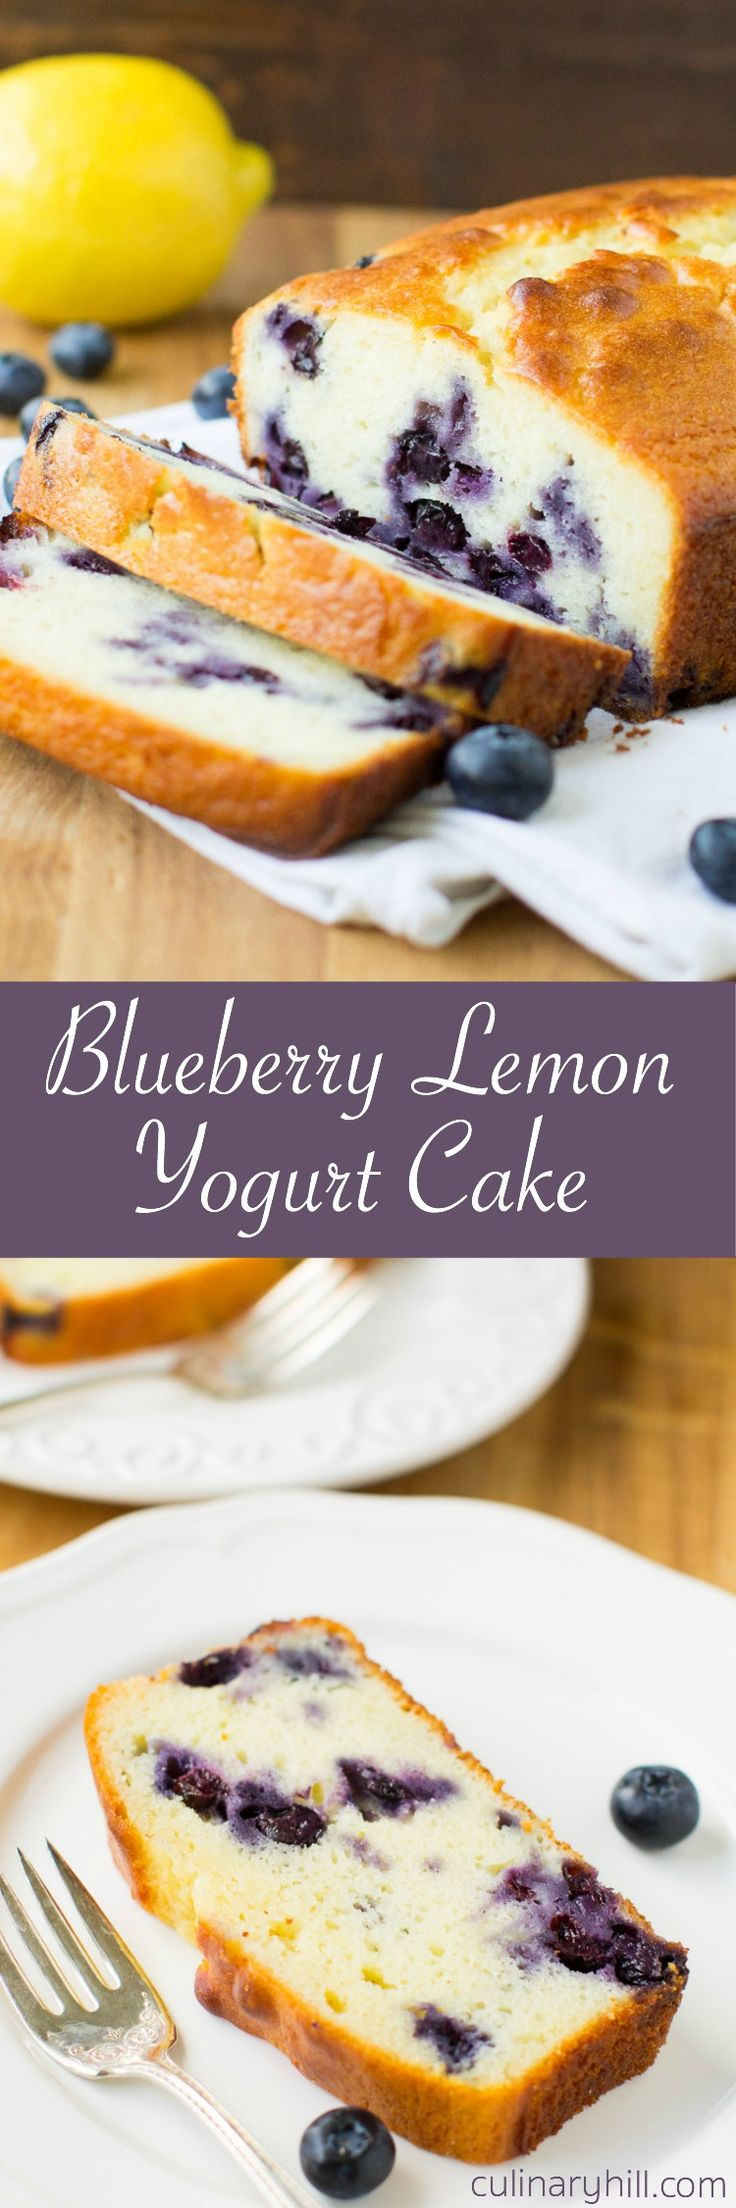 Lemon Yogurt Cake recipe with fresh blueberries and rich Greek yogurt.